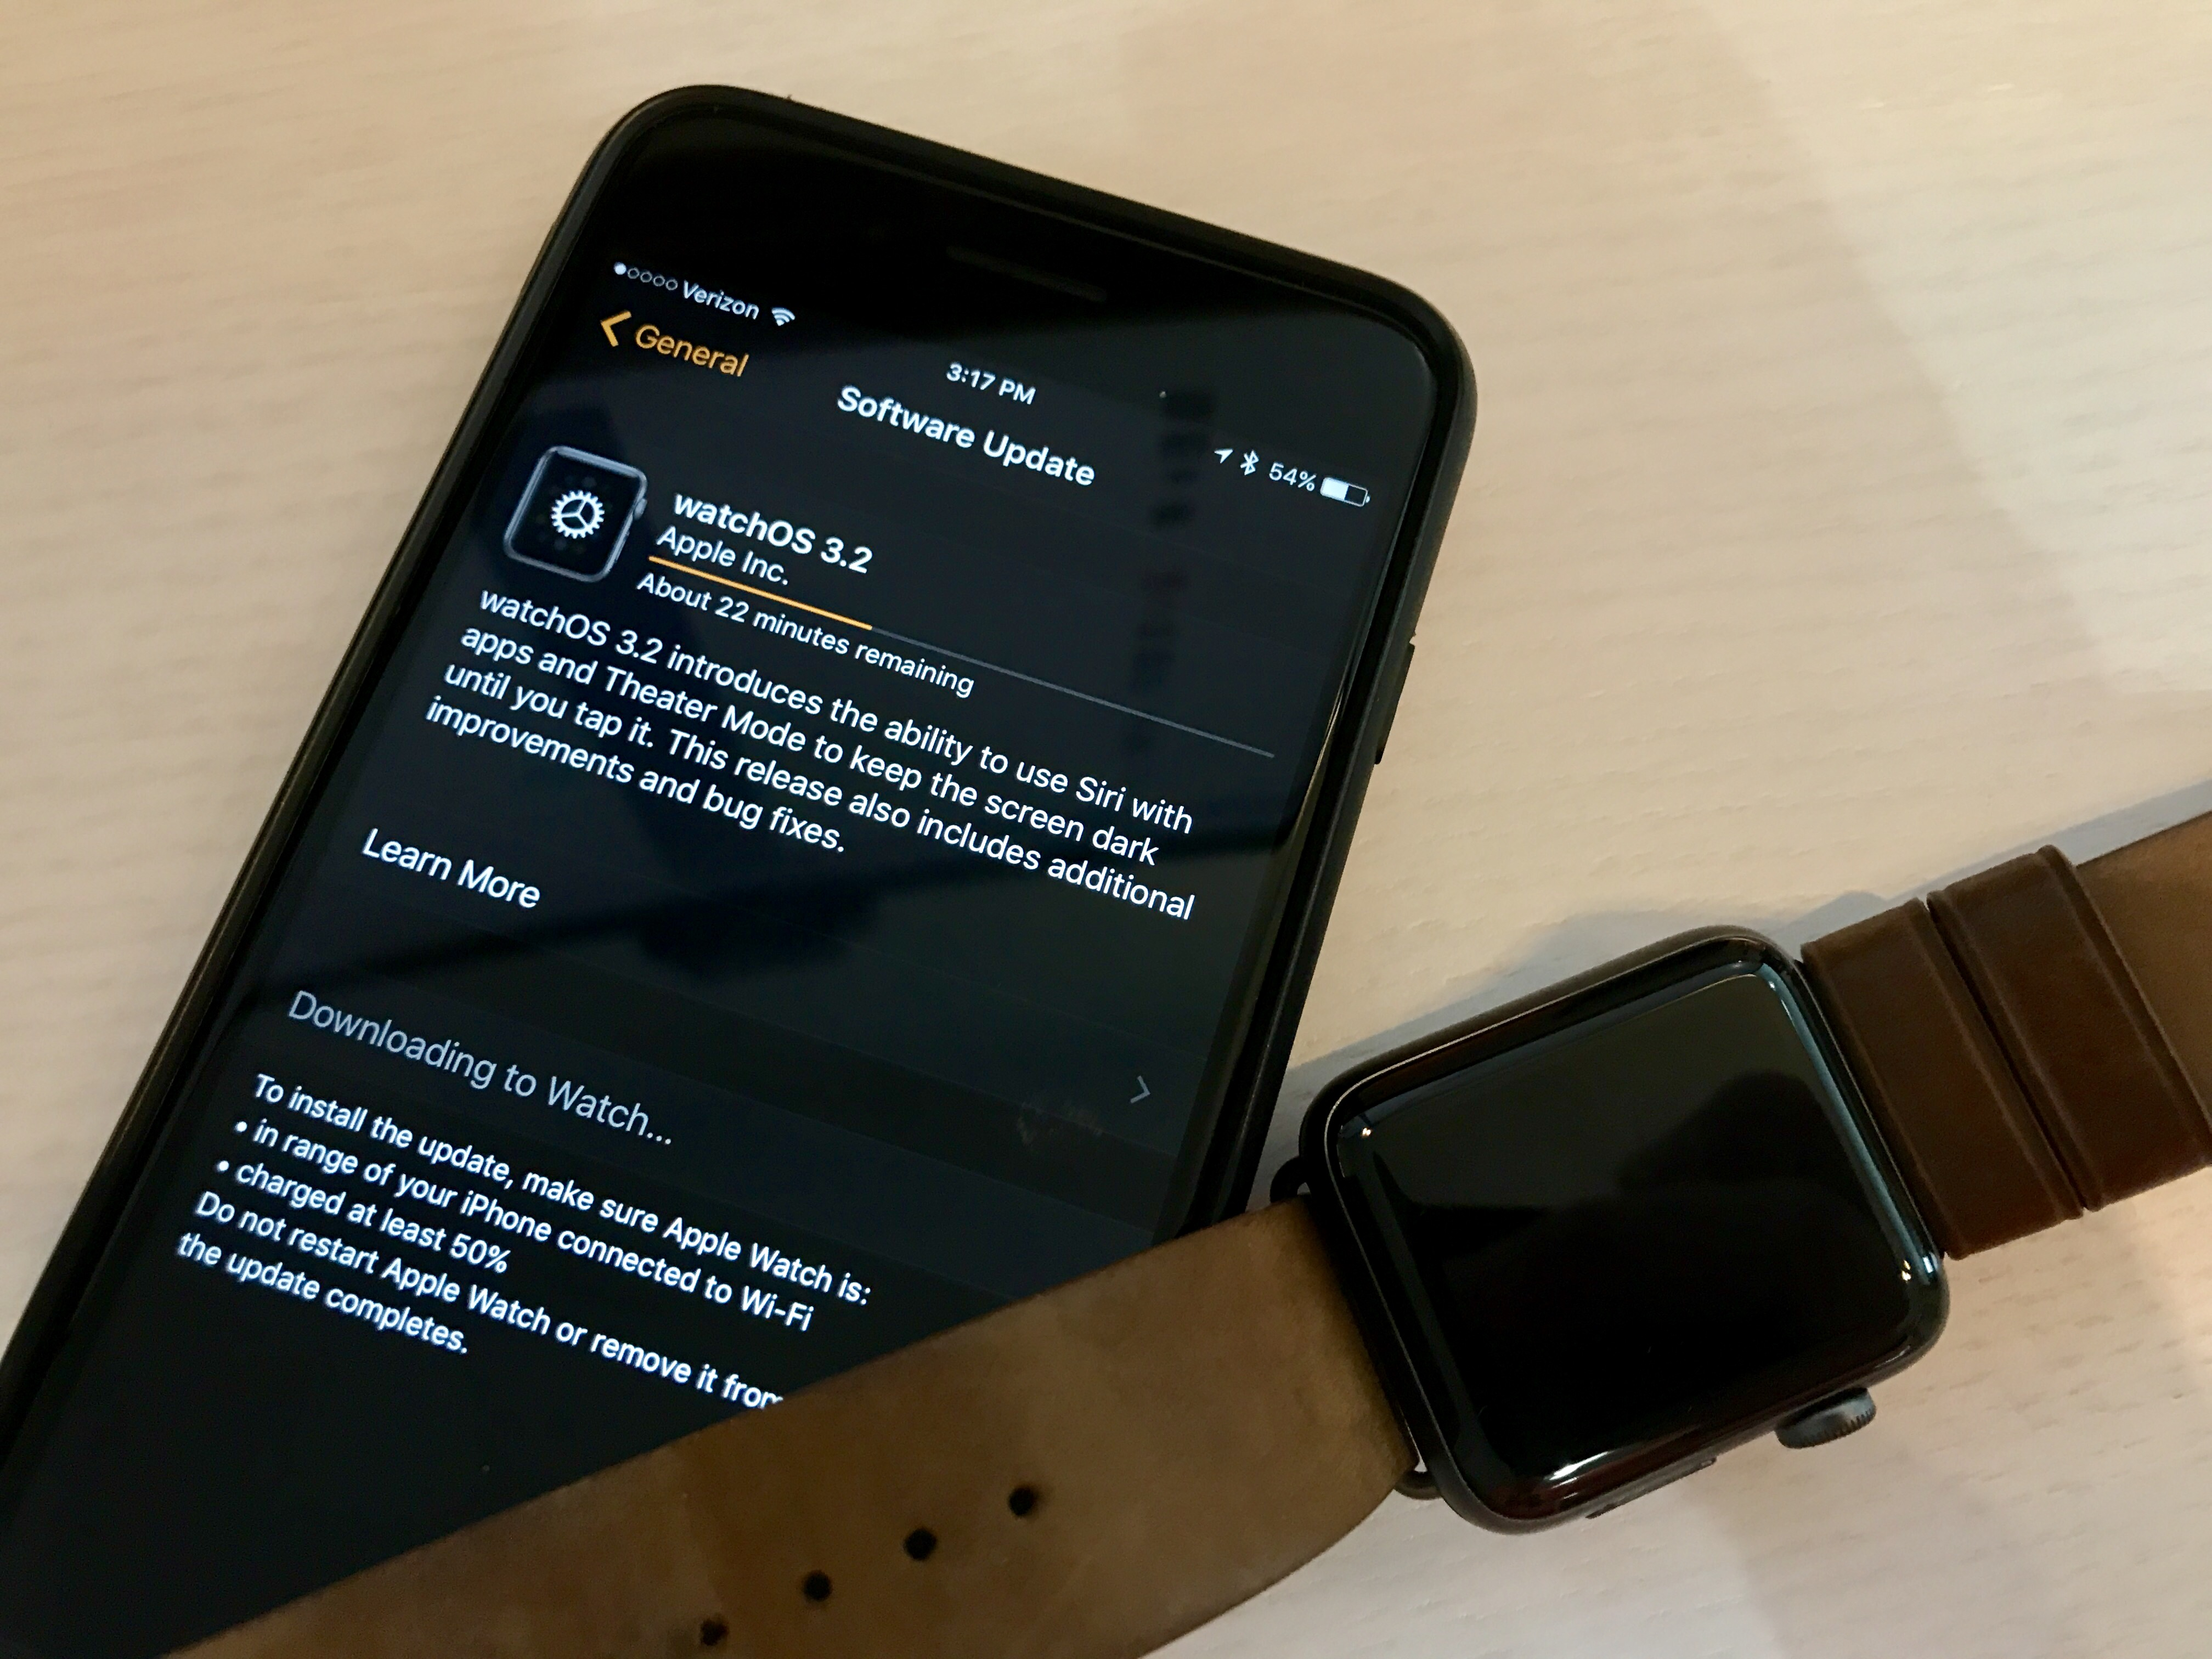 How Long Does watchOS 3 2 Update Take to Finish